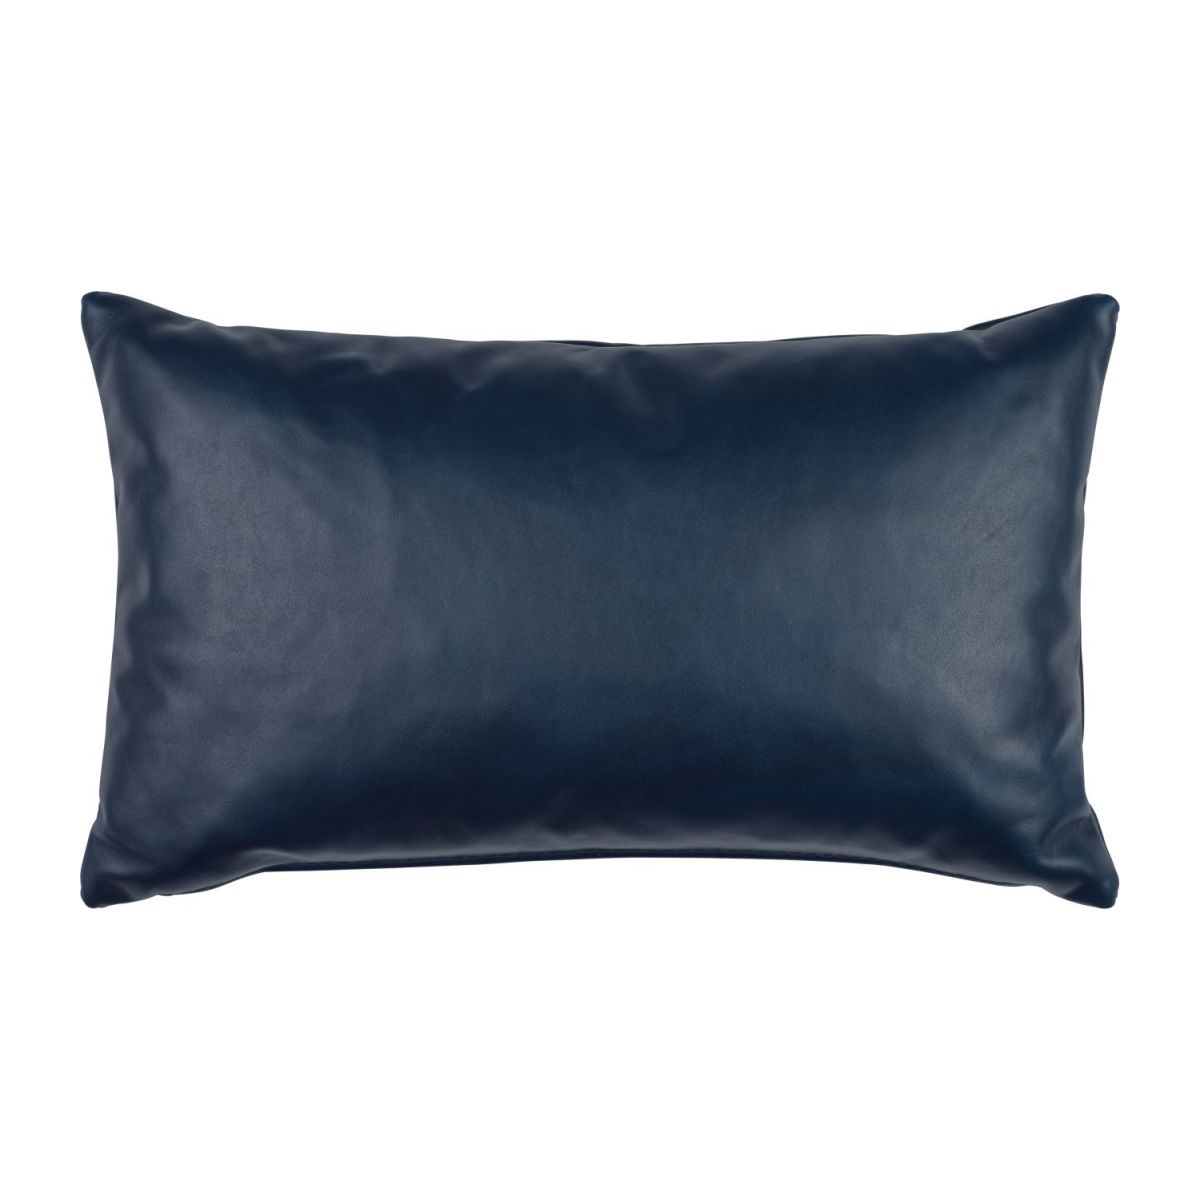 Cushion 30x50 made of aniline leather, blue n°1